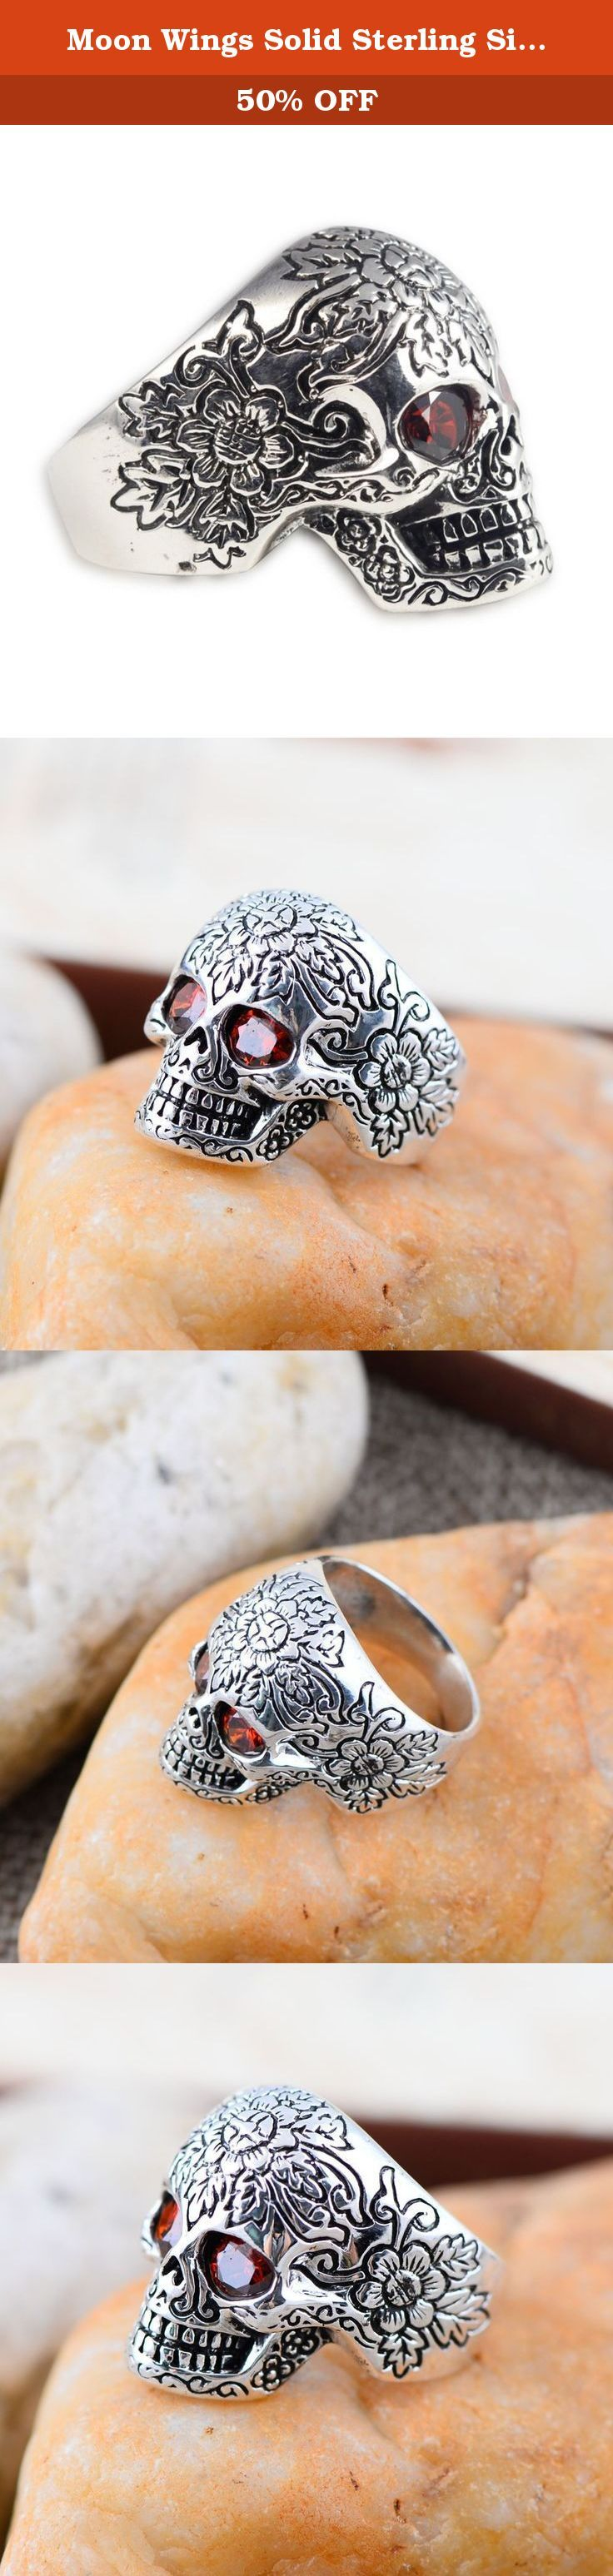 Moon Wings Solid Sterling Silver Skull Vintage Mens Ring Size 11. Product specifications Weight: approx. 10.70 g (solid sterling silver); Ring Size: 11 (US Ring Size); Ring Surface: 2.2cm * 1.4cm Material 100% international standard S925 sterling silver. Sterling silver refers to 92.5% silver content. Due to additional content, S925 is resistant to deformation not easy deformation. And the hardness of the S925 sterling silver is also greatly enhanced. Our sterling silver jewelry has…